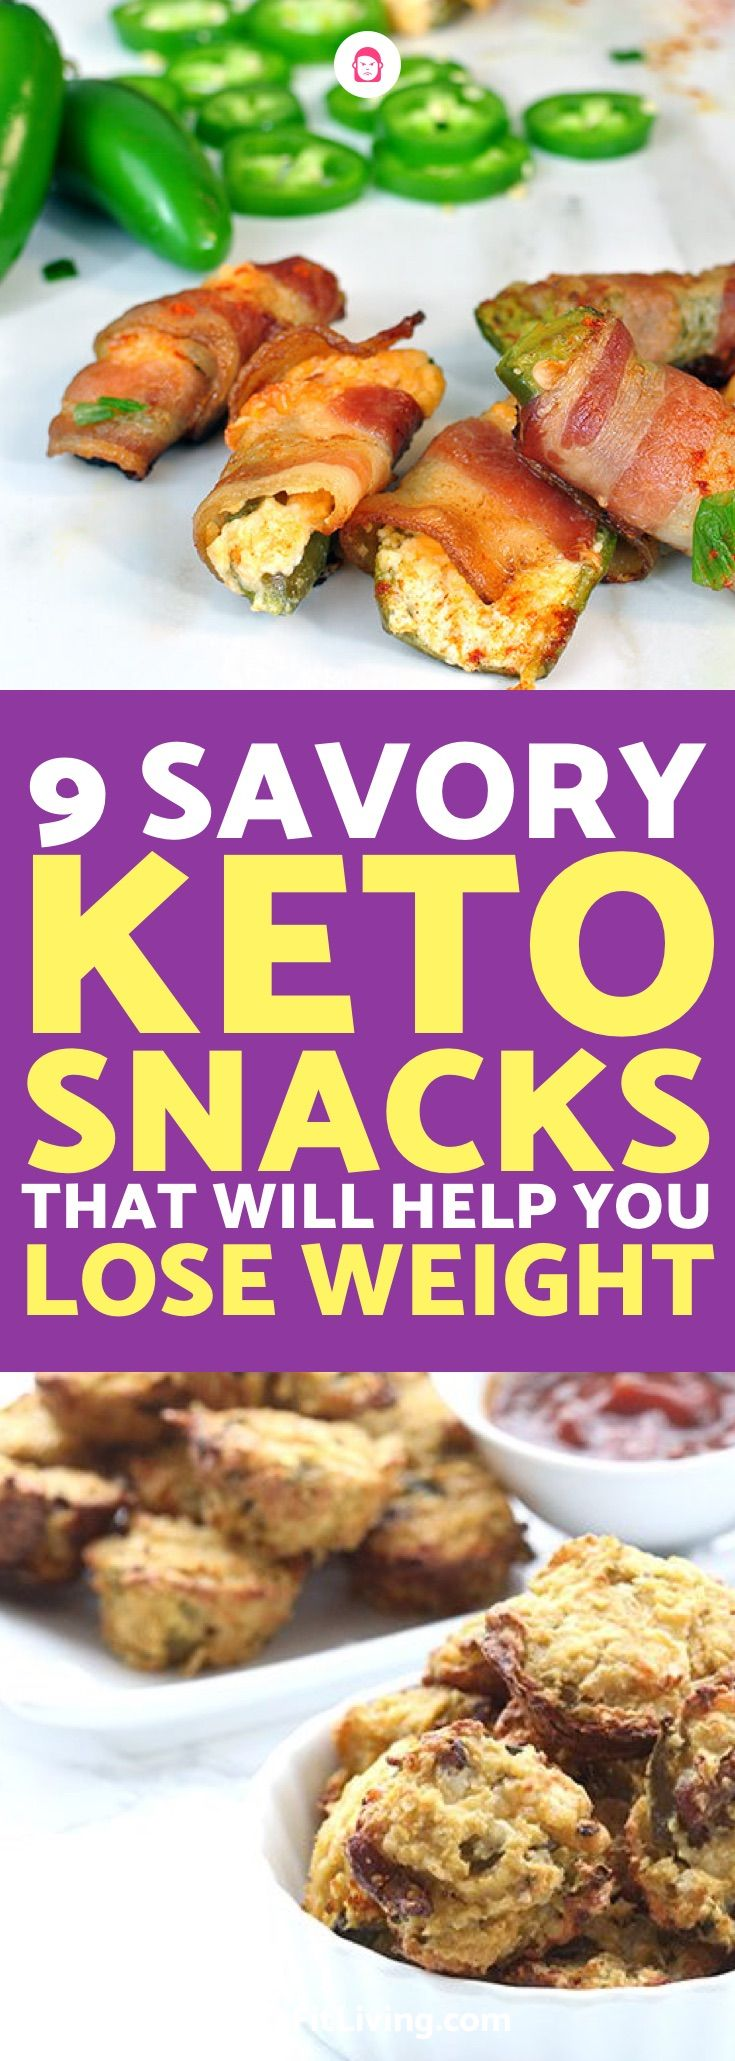 Keto snacks allow you to stick with the ketogenic diet while having a small bite to eat. These 9 keto snacks hit the spot.